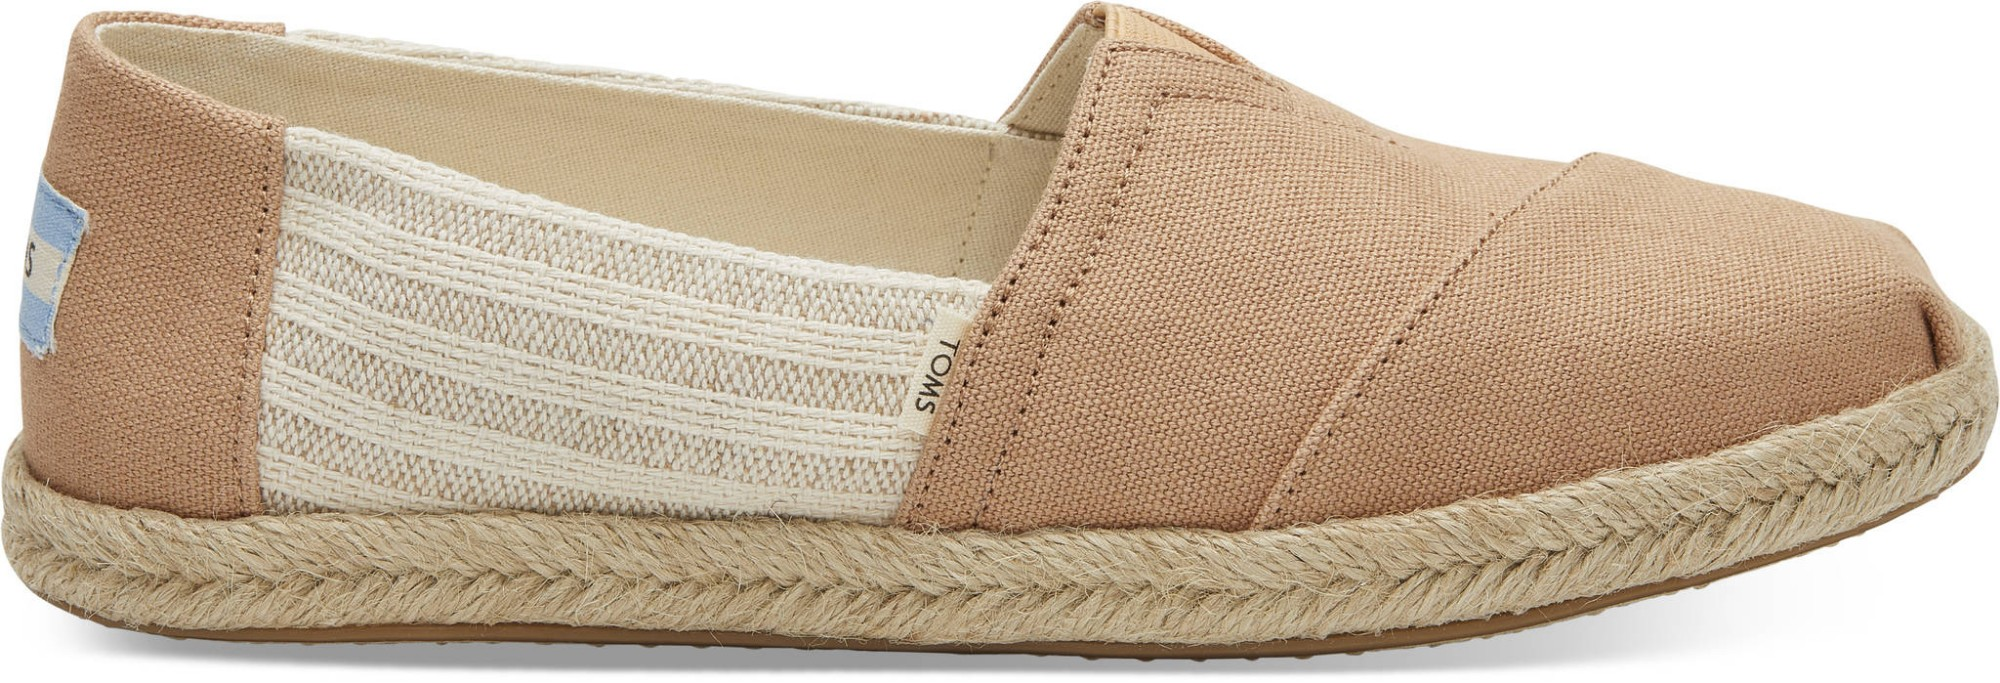 TOMS Canvas Ivy League on Rope Women's Alpargata Honey 37